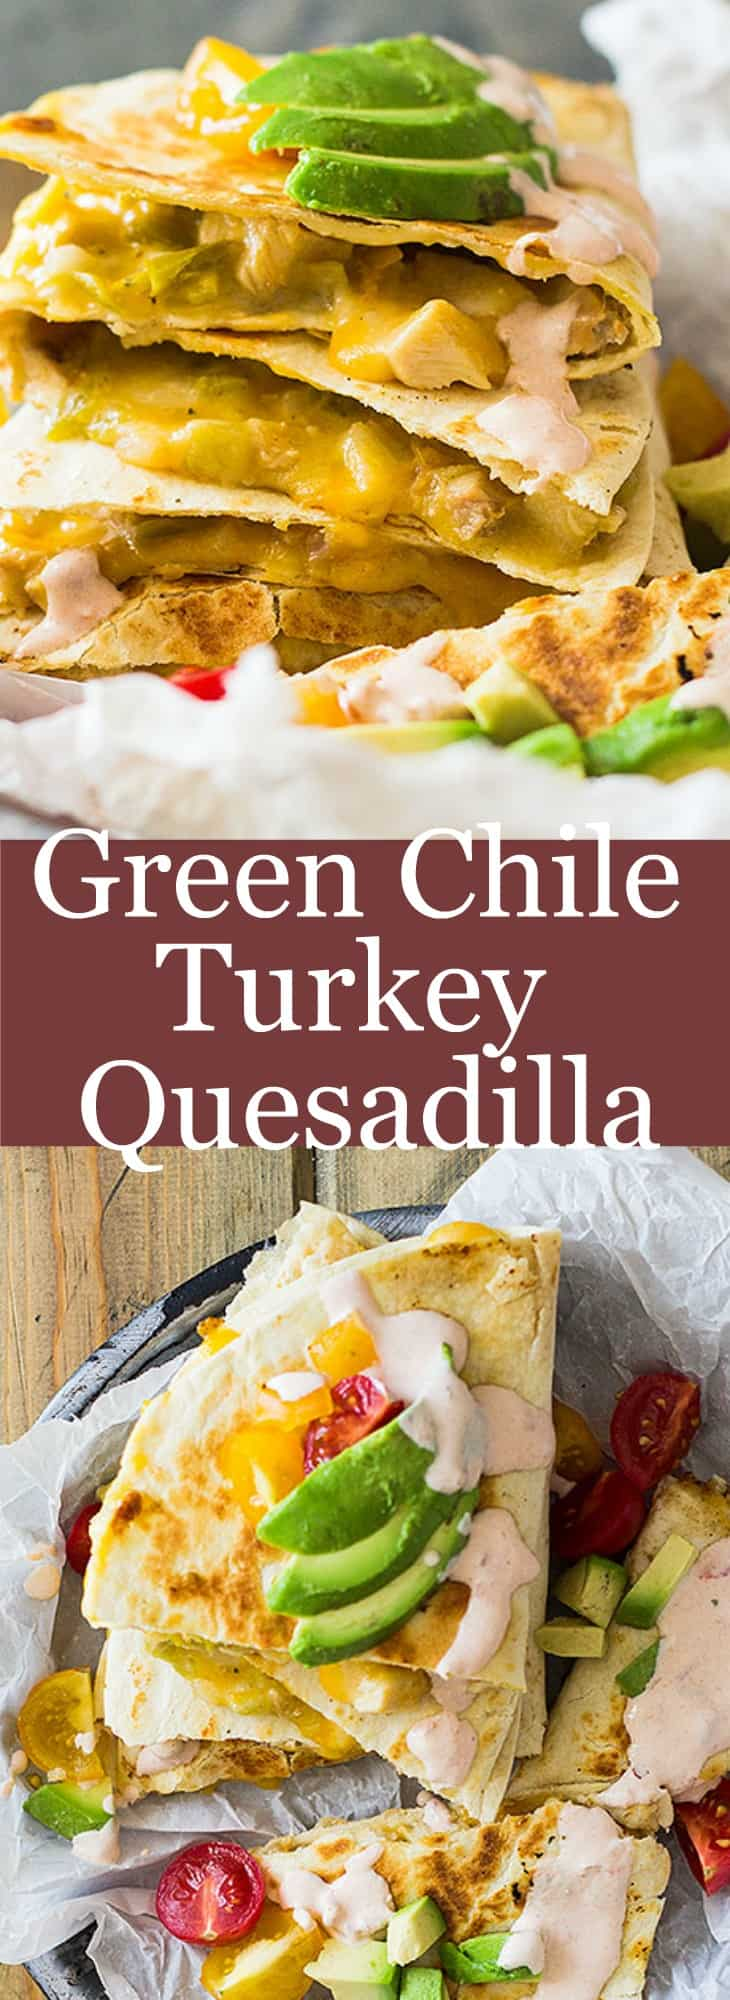 Use leftover turkey (or chicken) to make these Green Chile Turkey Quesadillas. Filled with gooey cheese, zesty green chilies and toasted in a crispy tortilla! | www.countrysidecravings.com